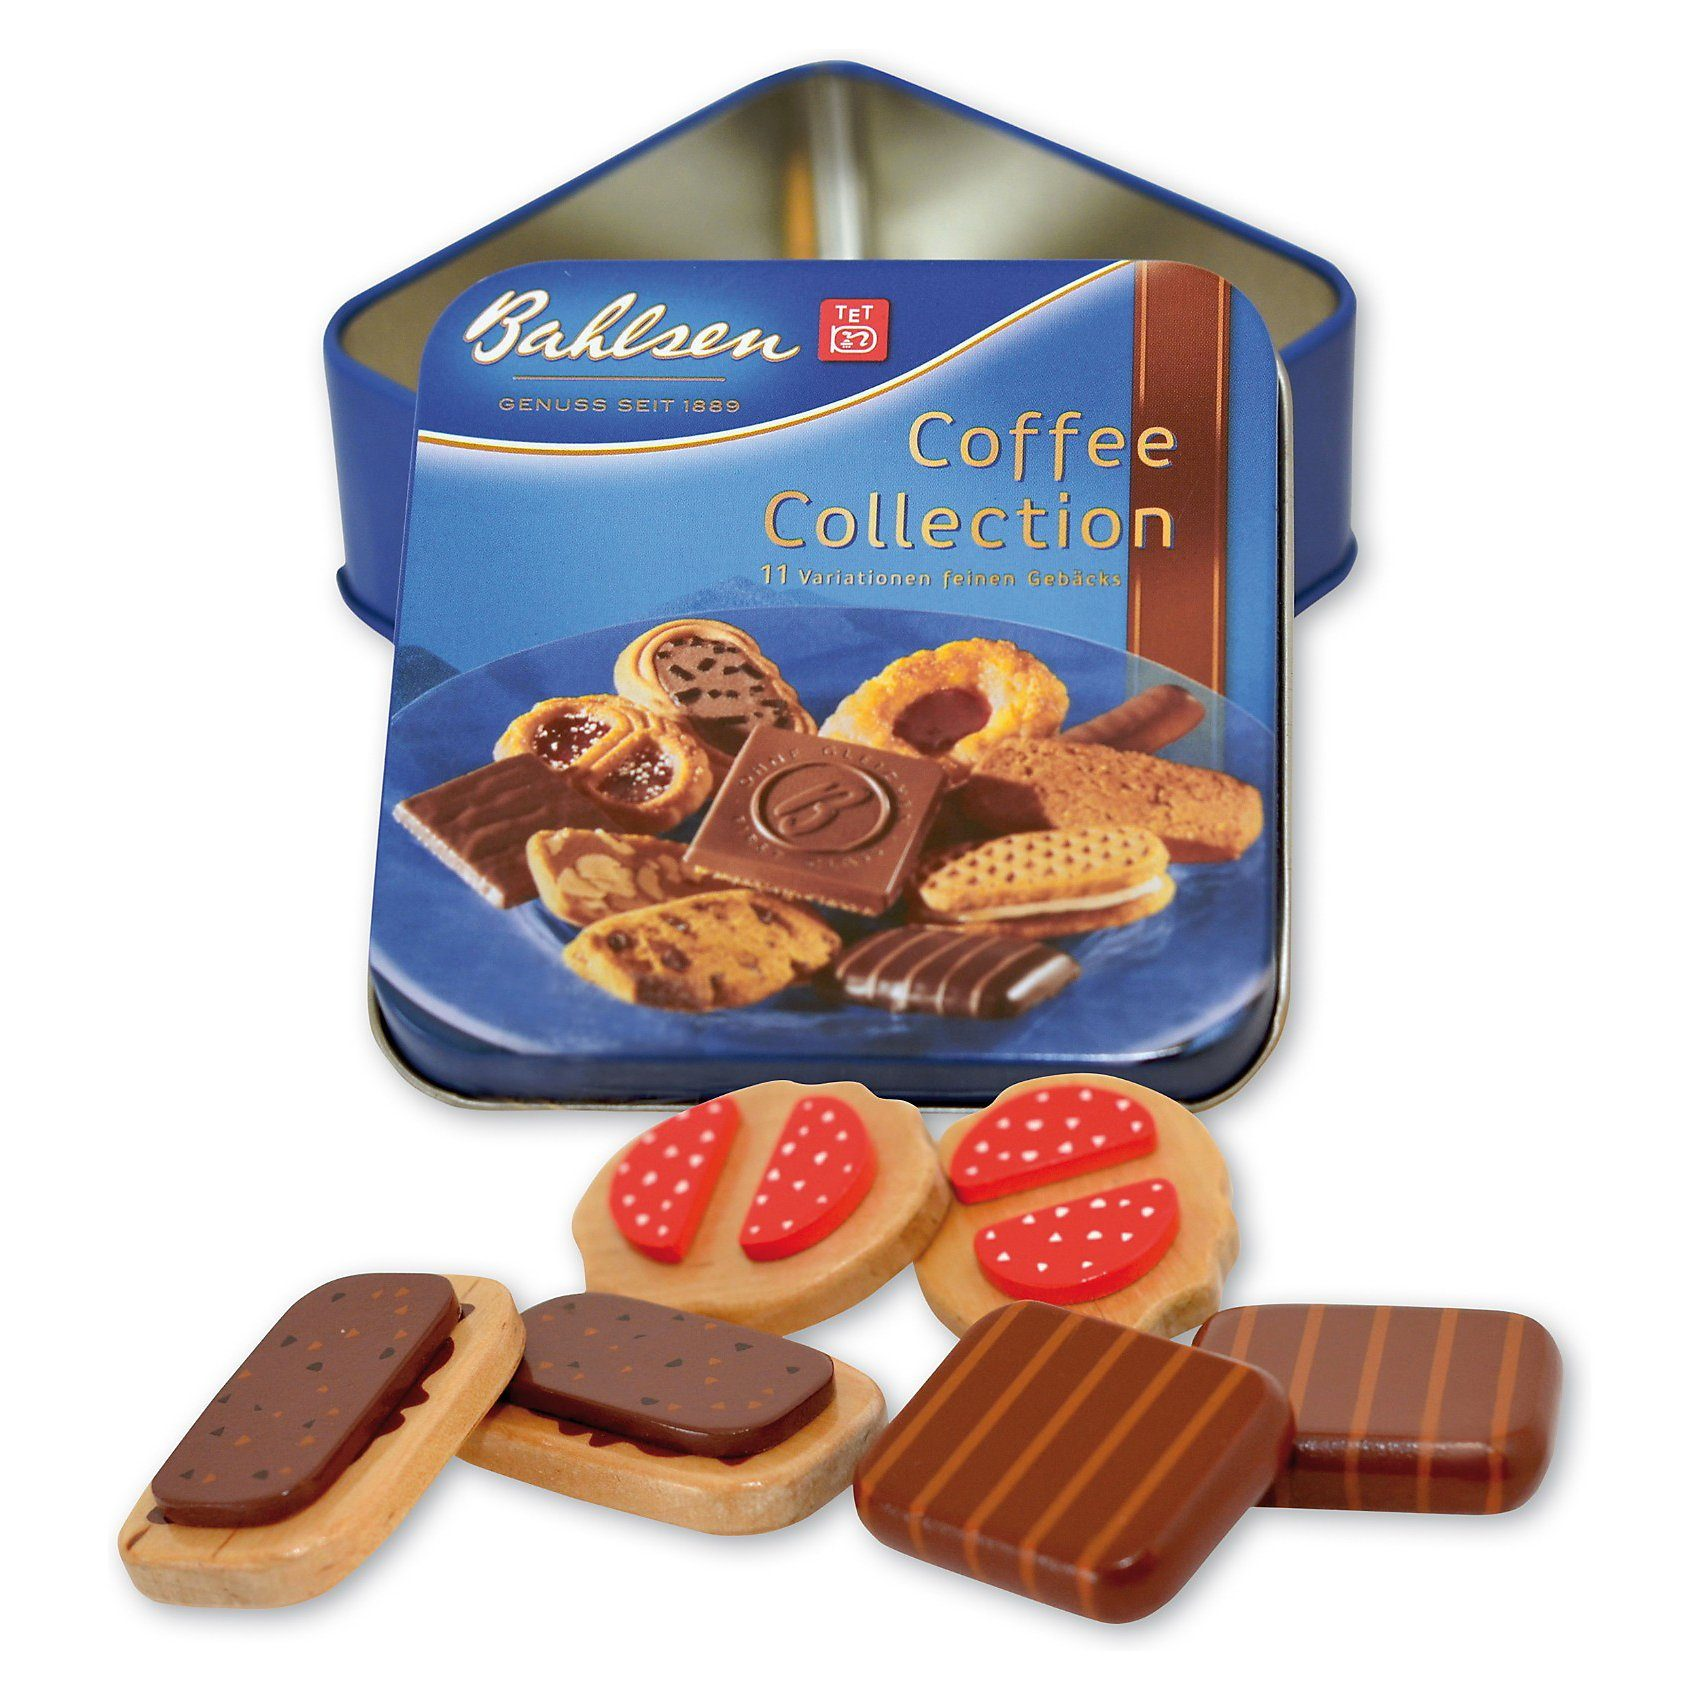 Chr. Tanner Bahlsen Coffee Collection